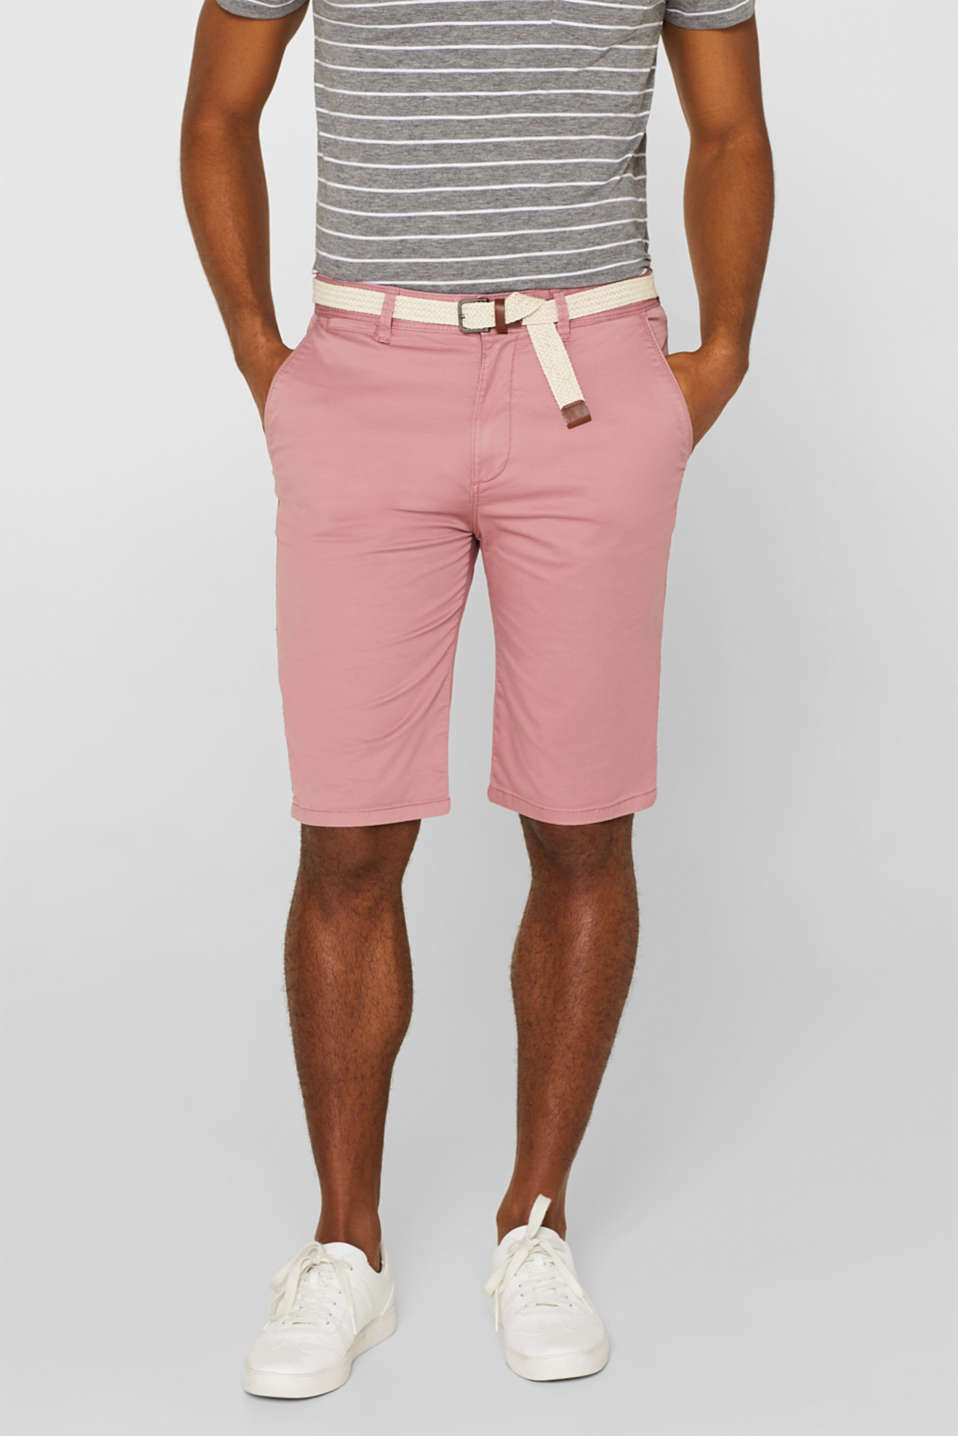 Esprit - Bermuda shorts in 100% cotton